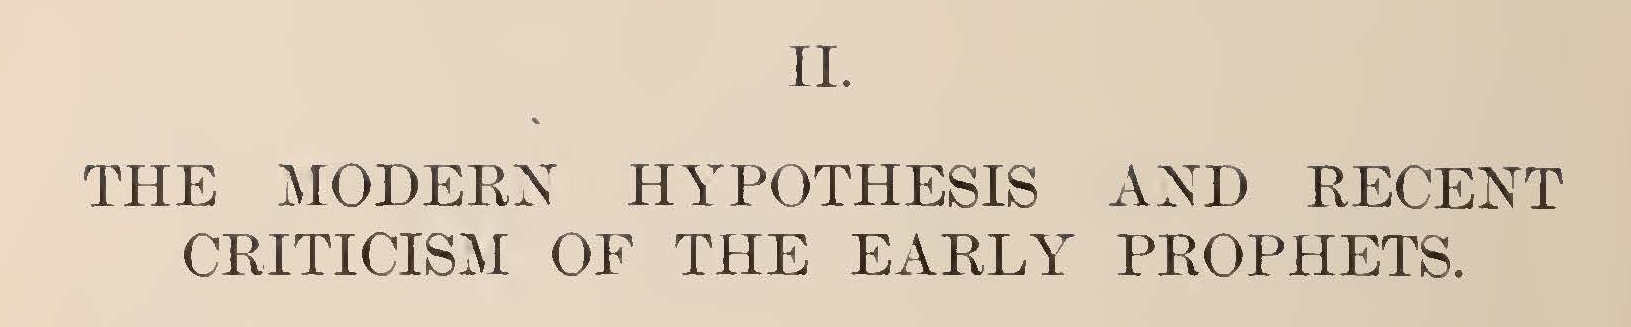 Vos, Geerhardus, The Modern Hypothesis and Recent Criticism of the Early Prophets, Part 1 Title Page.jpg